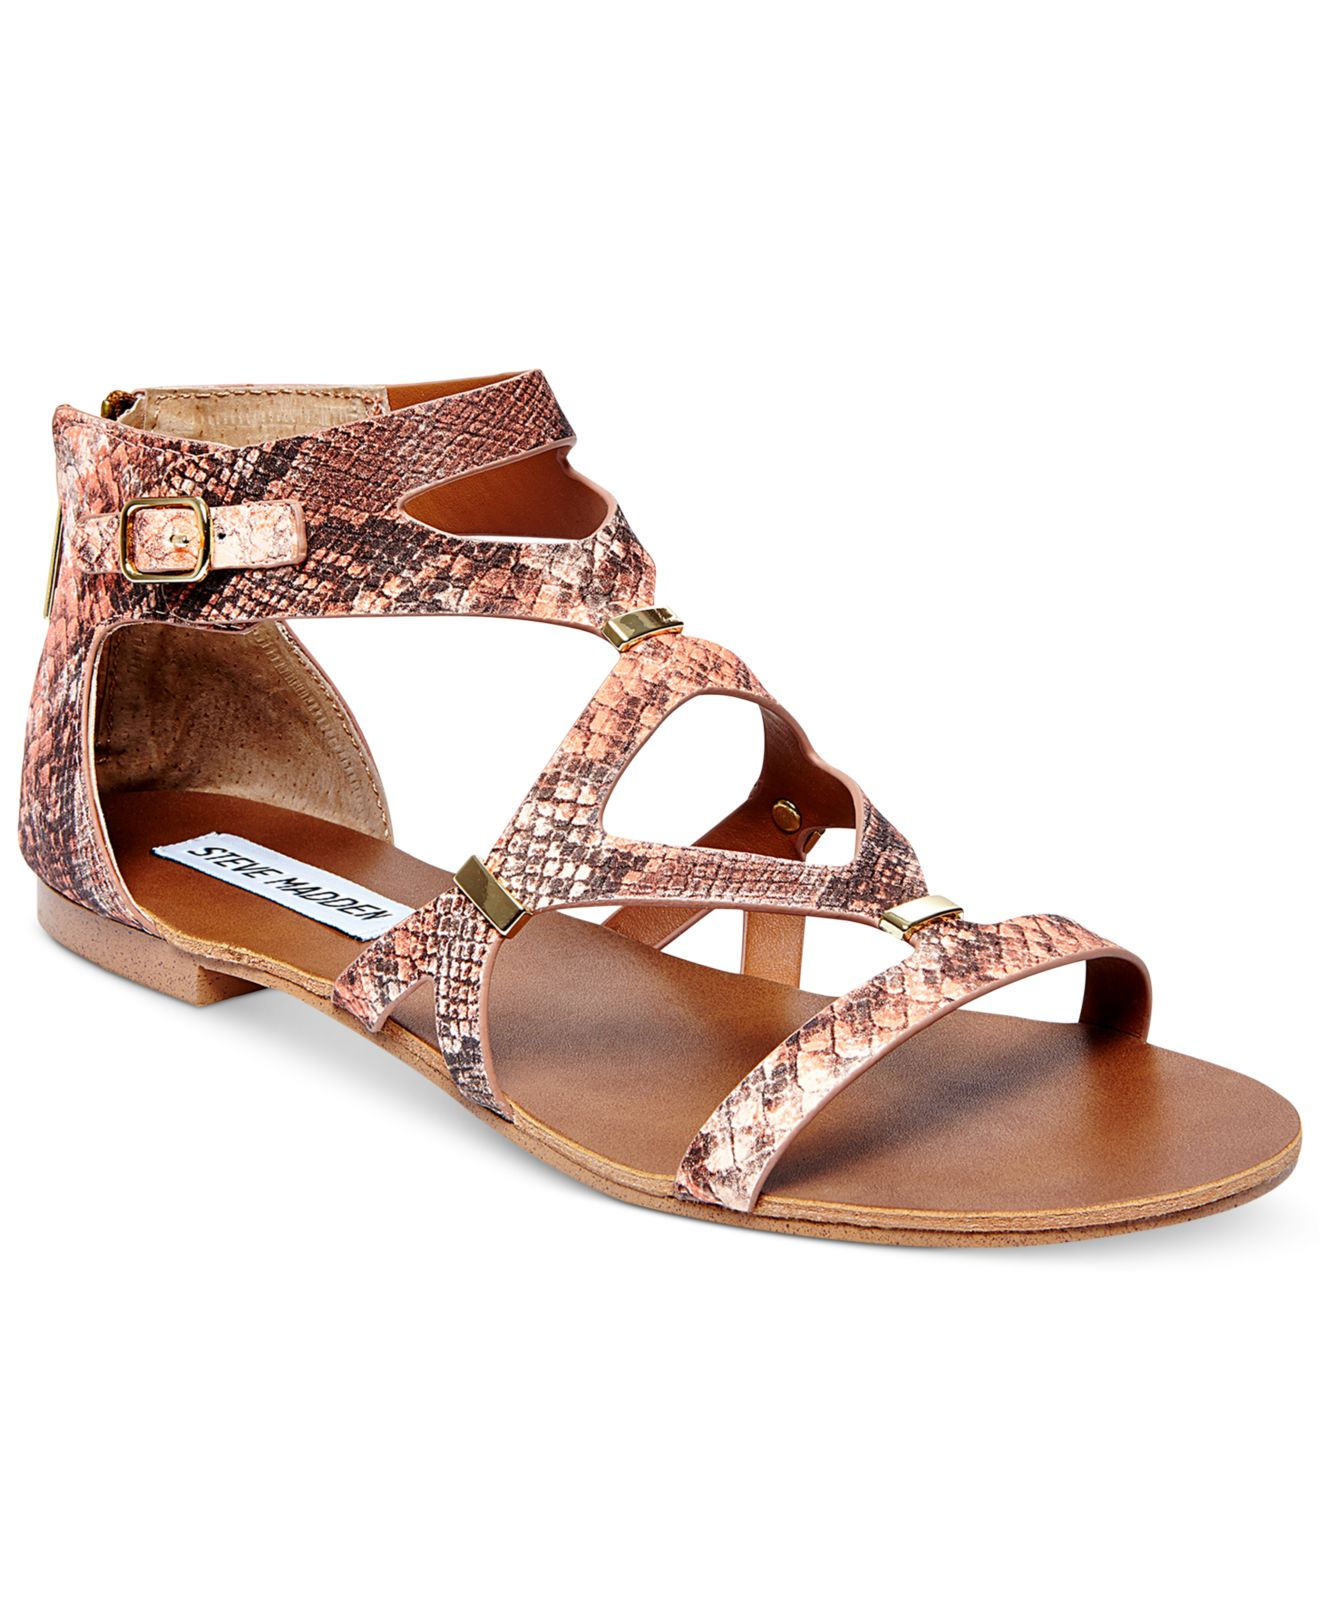 steve madden comly flat sandals in pink lyst